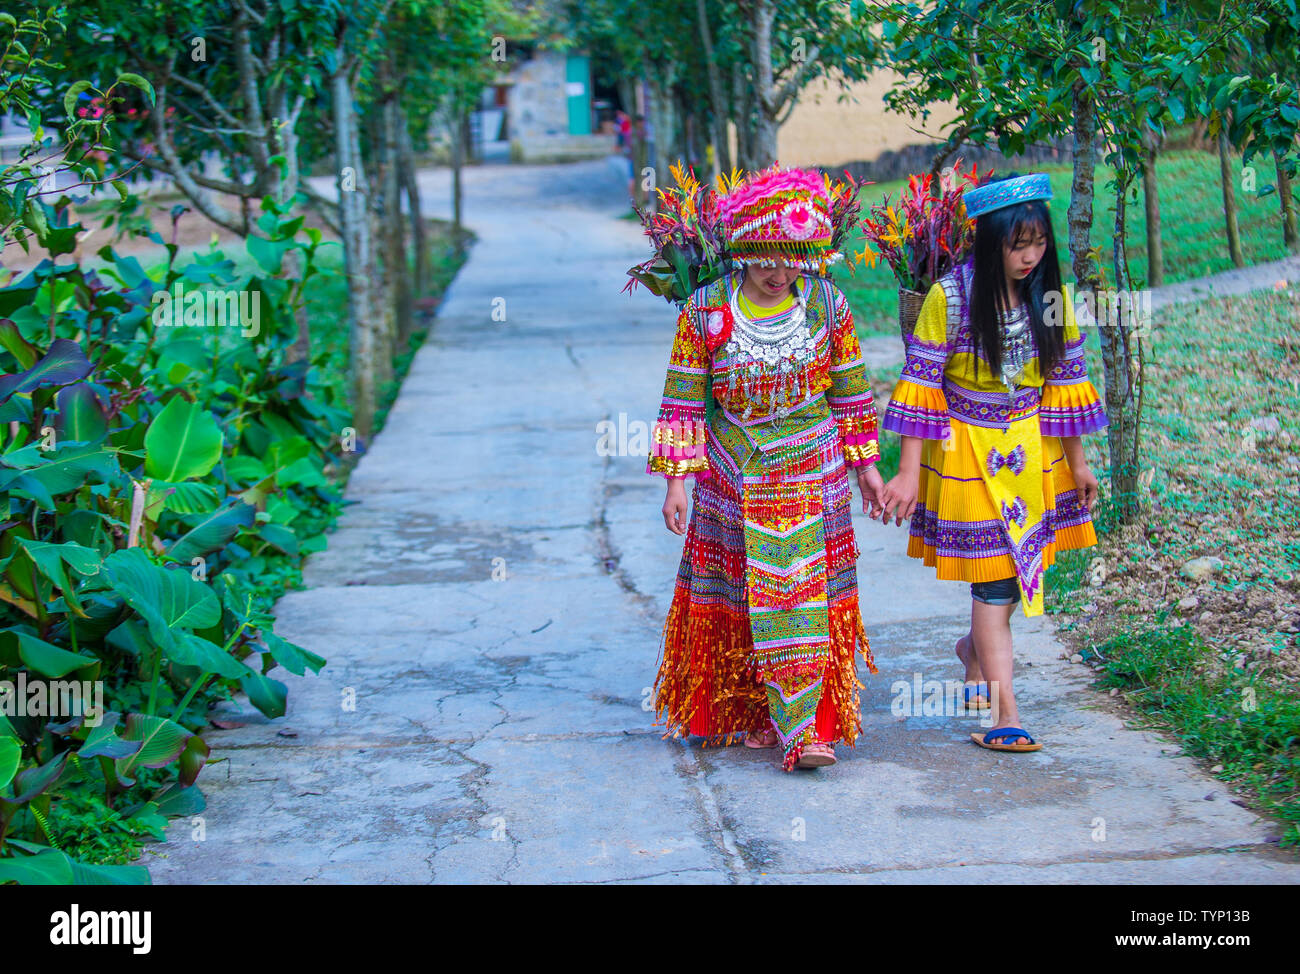 Girls from the Hmong minority in a village near Dong Van in Vietnam - Stock Image